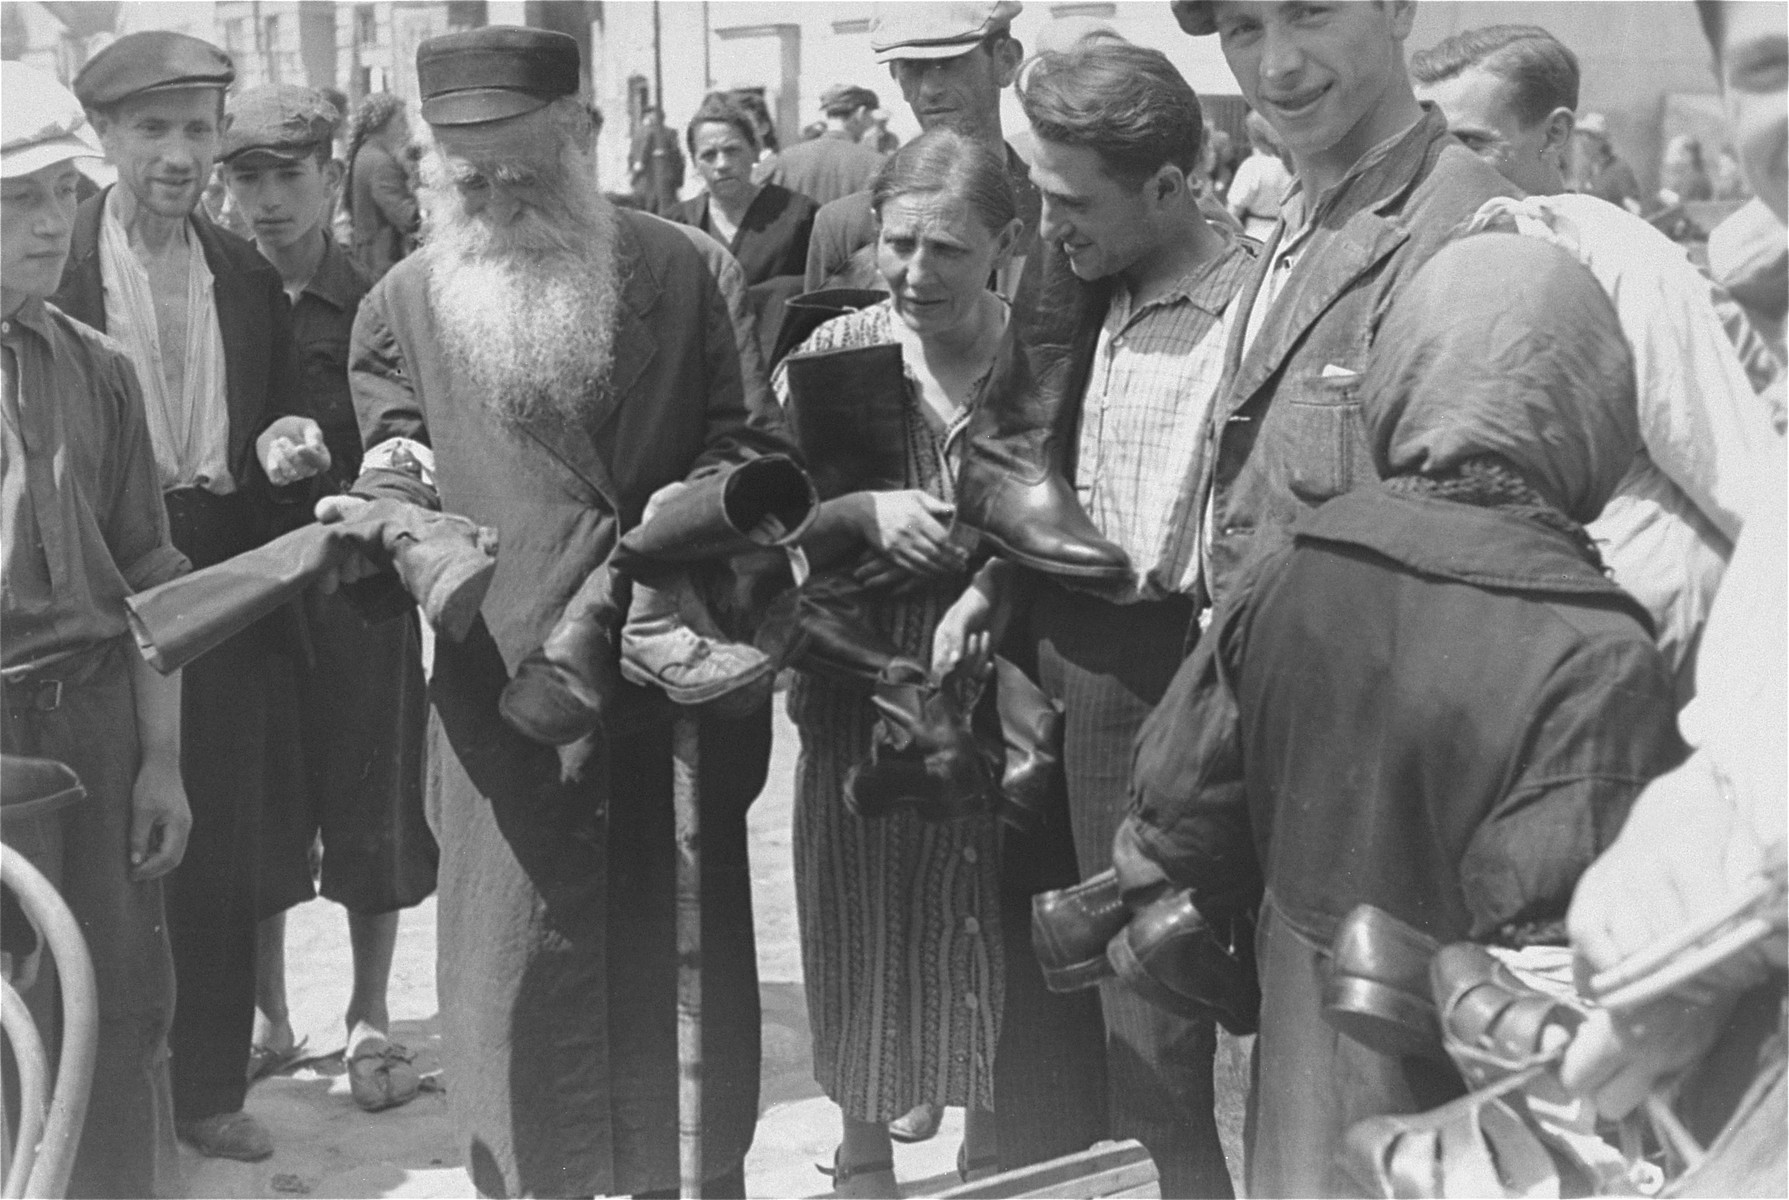 An elderly, religious Jewish vendor offers old shoes and boots for sale at an outdoor market in the Warsaw ghetto.